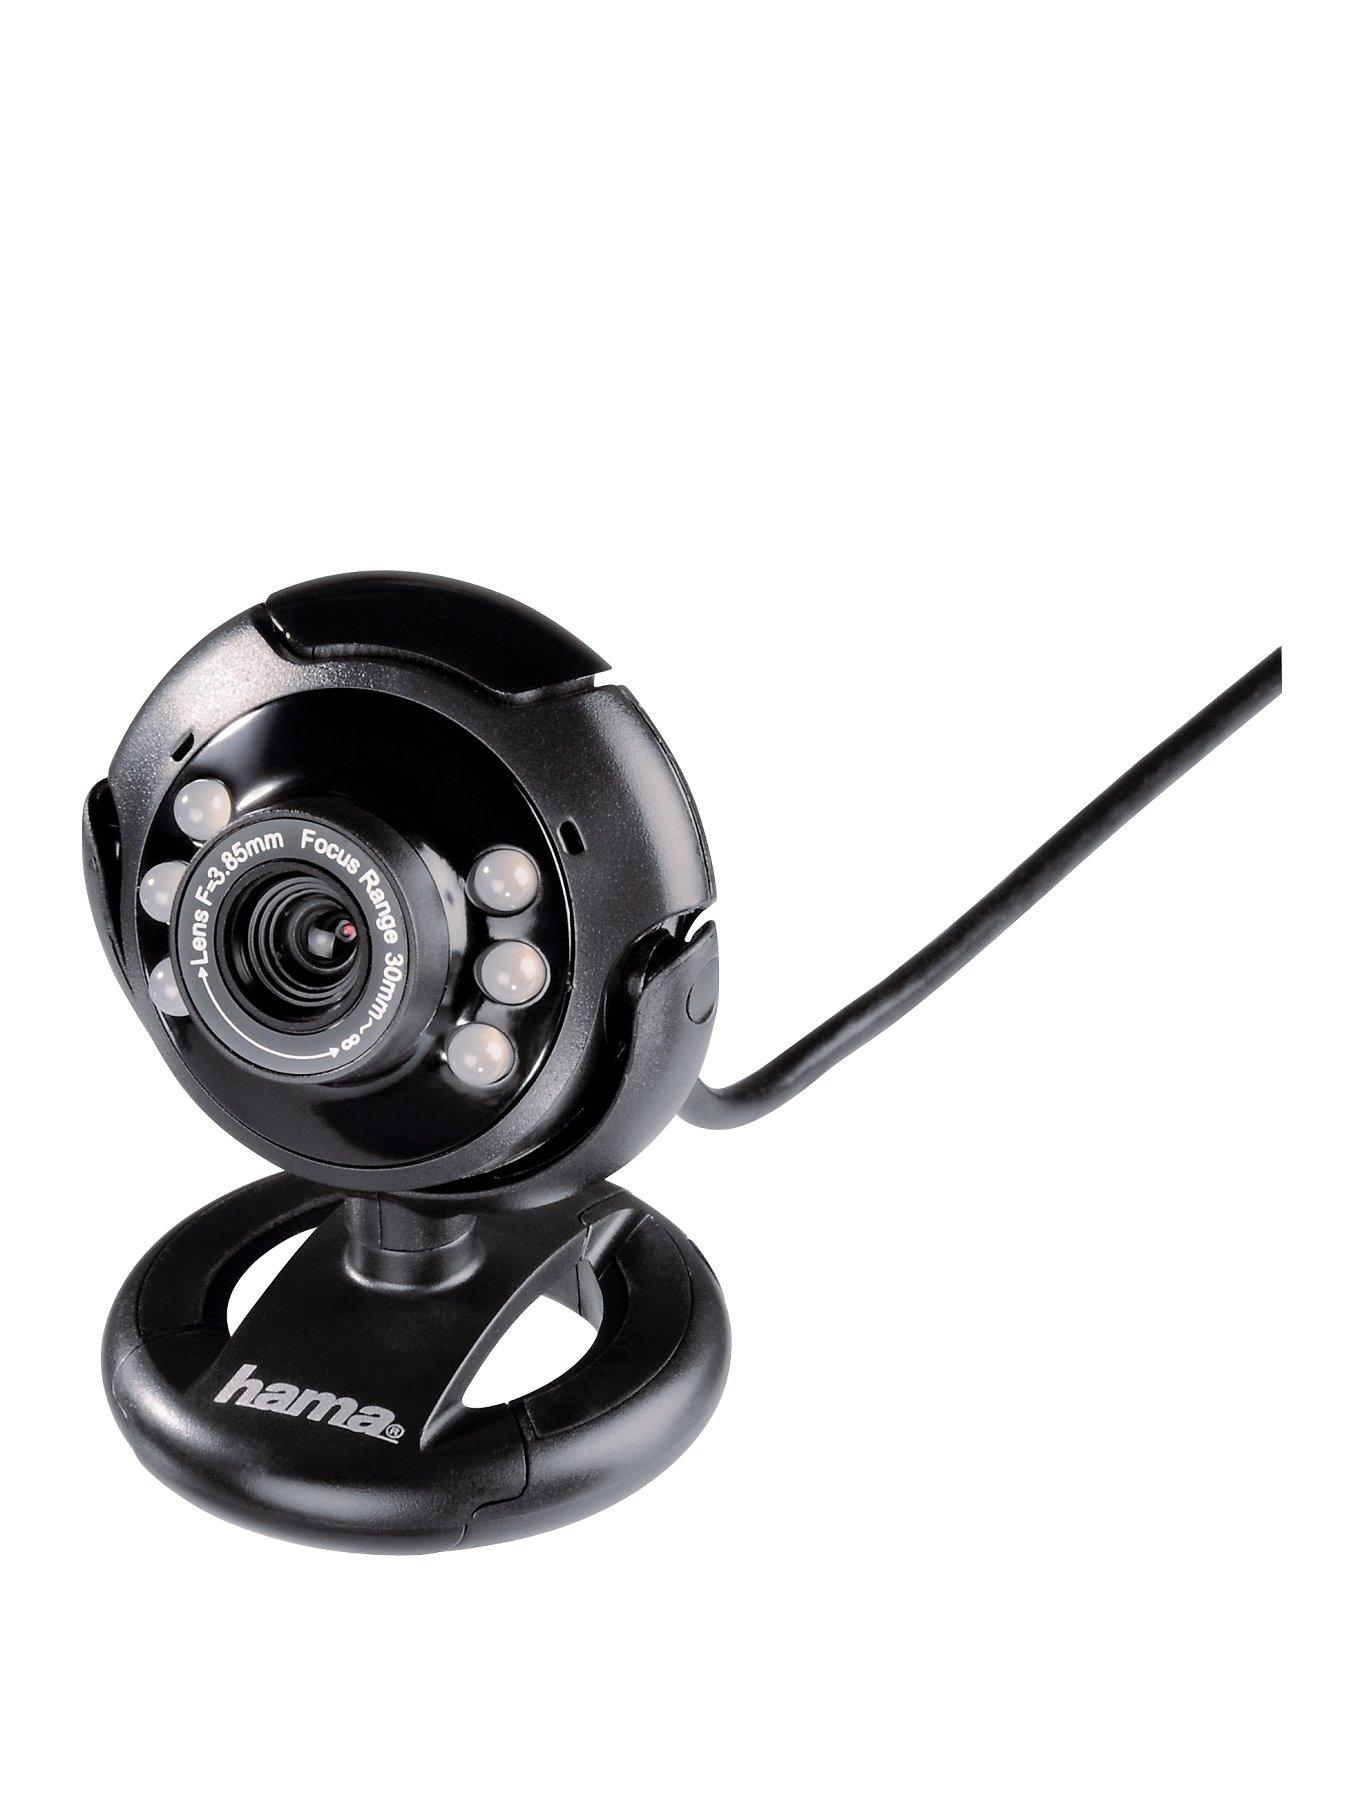 AC-150 Webcam